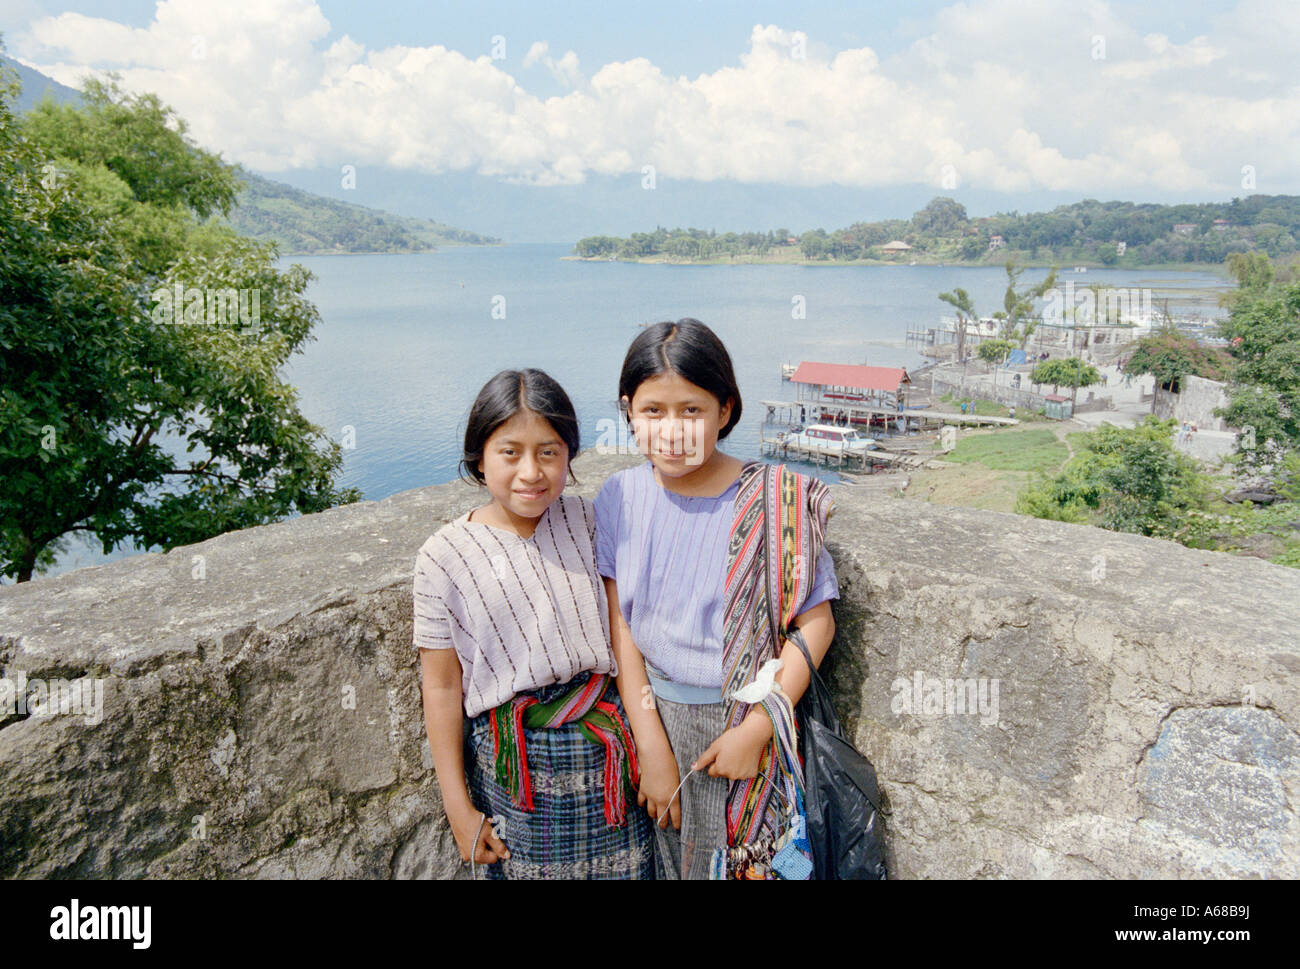 Two young girls, selling trinkets in Santiago, Atitlan, Guatemala. - Stock Image